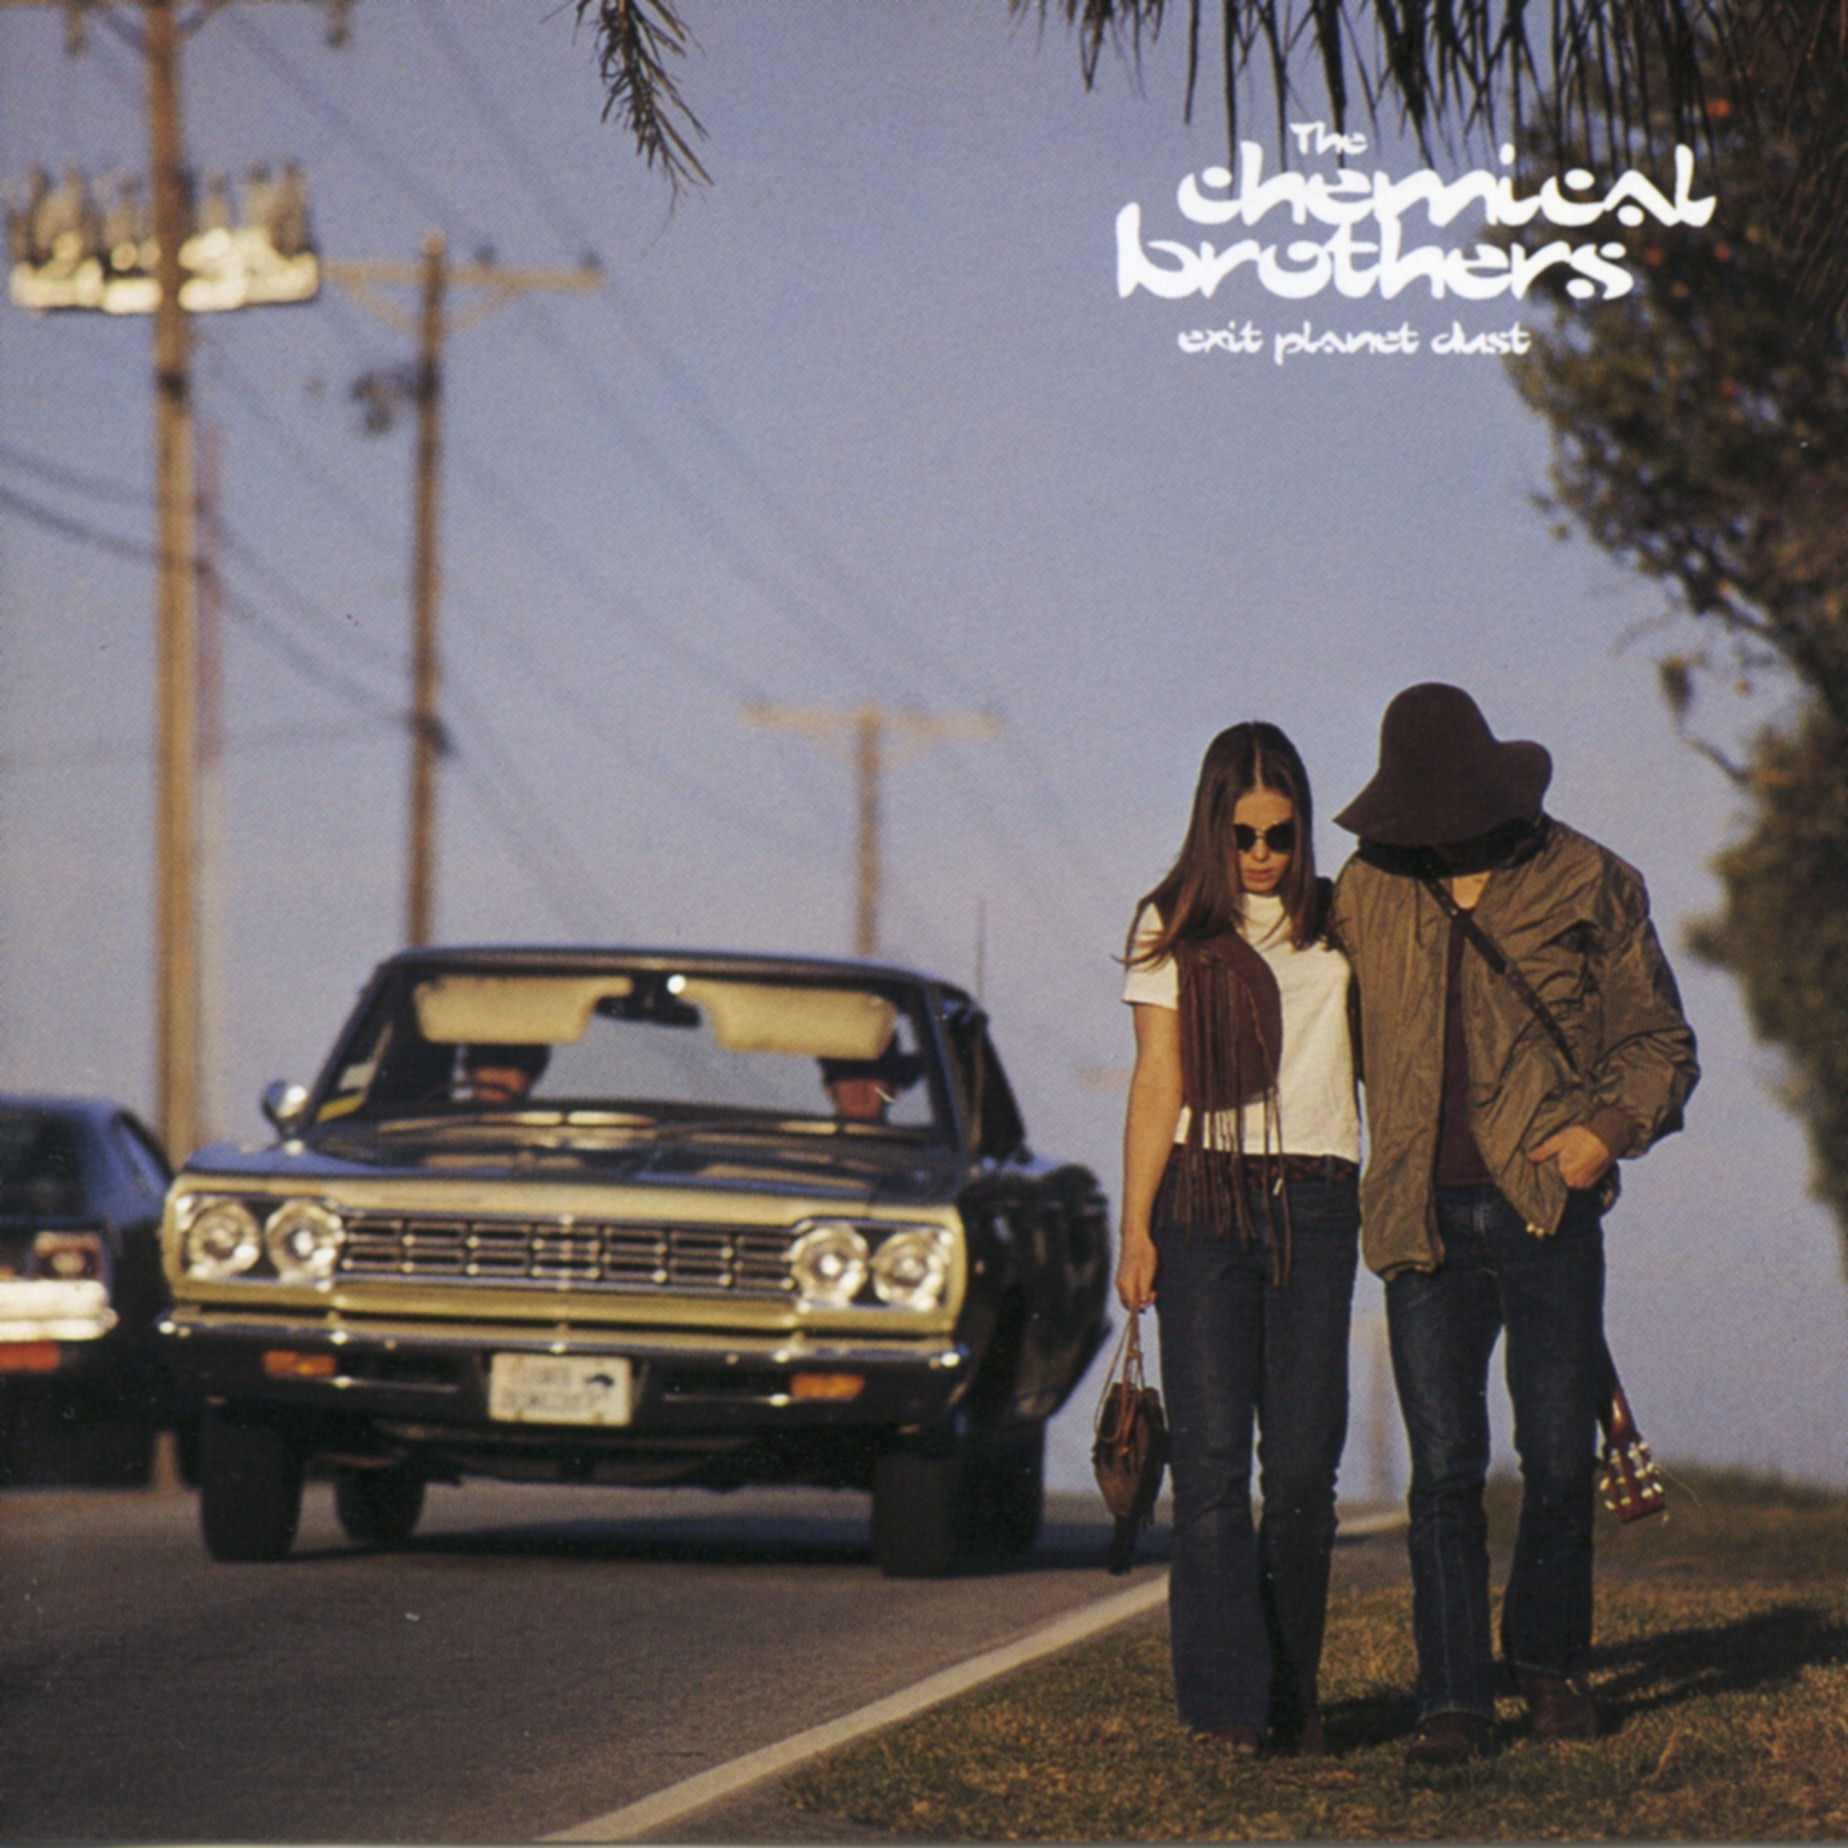 1995 - The Chemical Brothers